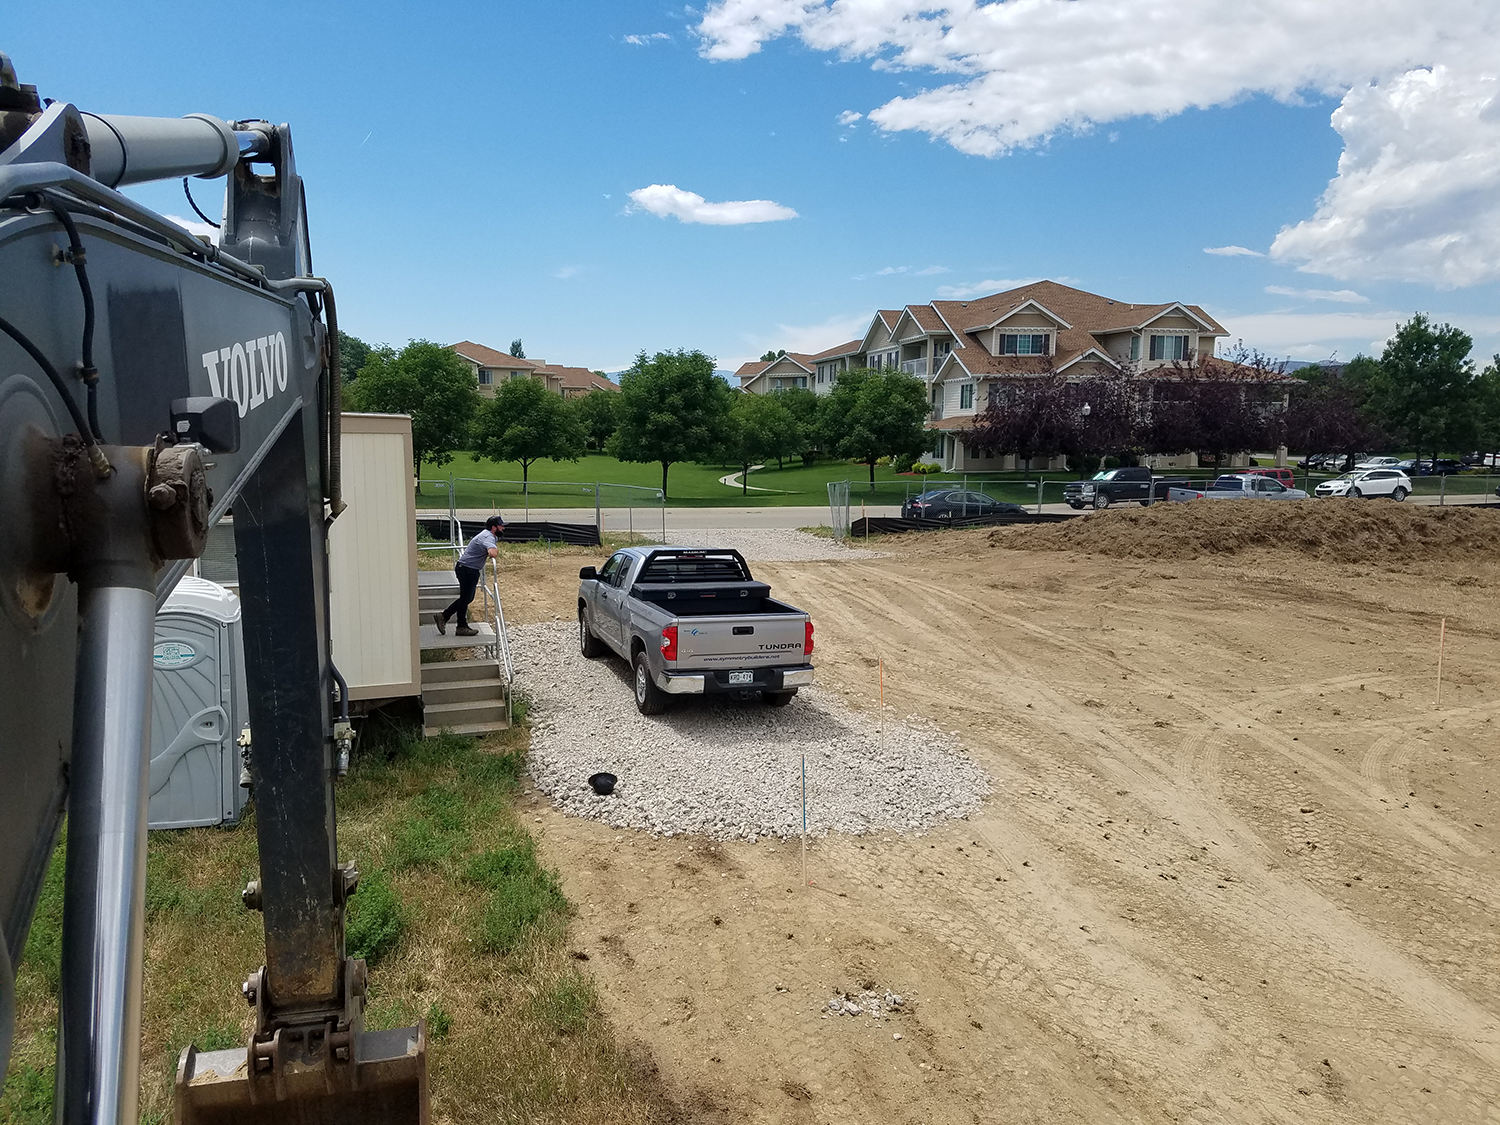 PROJECT DESCRIPTION - The Village Cooperative of Loveland broke ground on July 8th, 2019. This project includes the construction of new, 3-story, 58-unit, multi-family building with a parking structure below grade. It is slated for 14 months of construction.